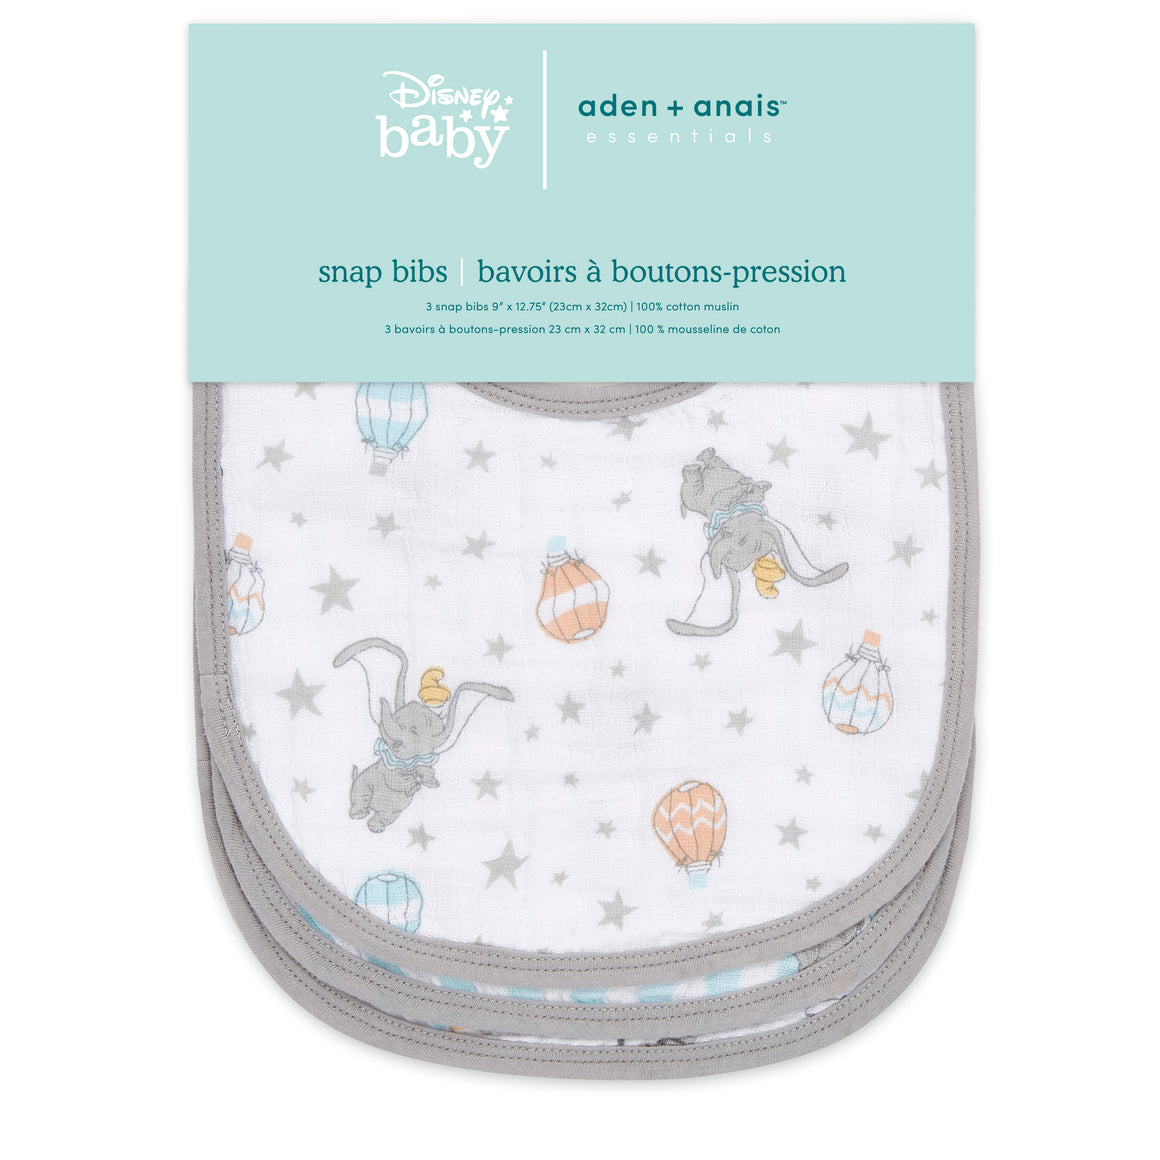 aden + anais essentials DISNEY Dumbo 3 pack snap bibs